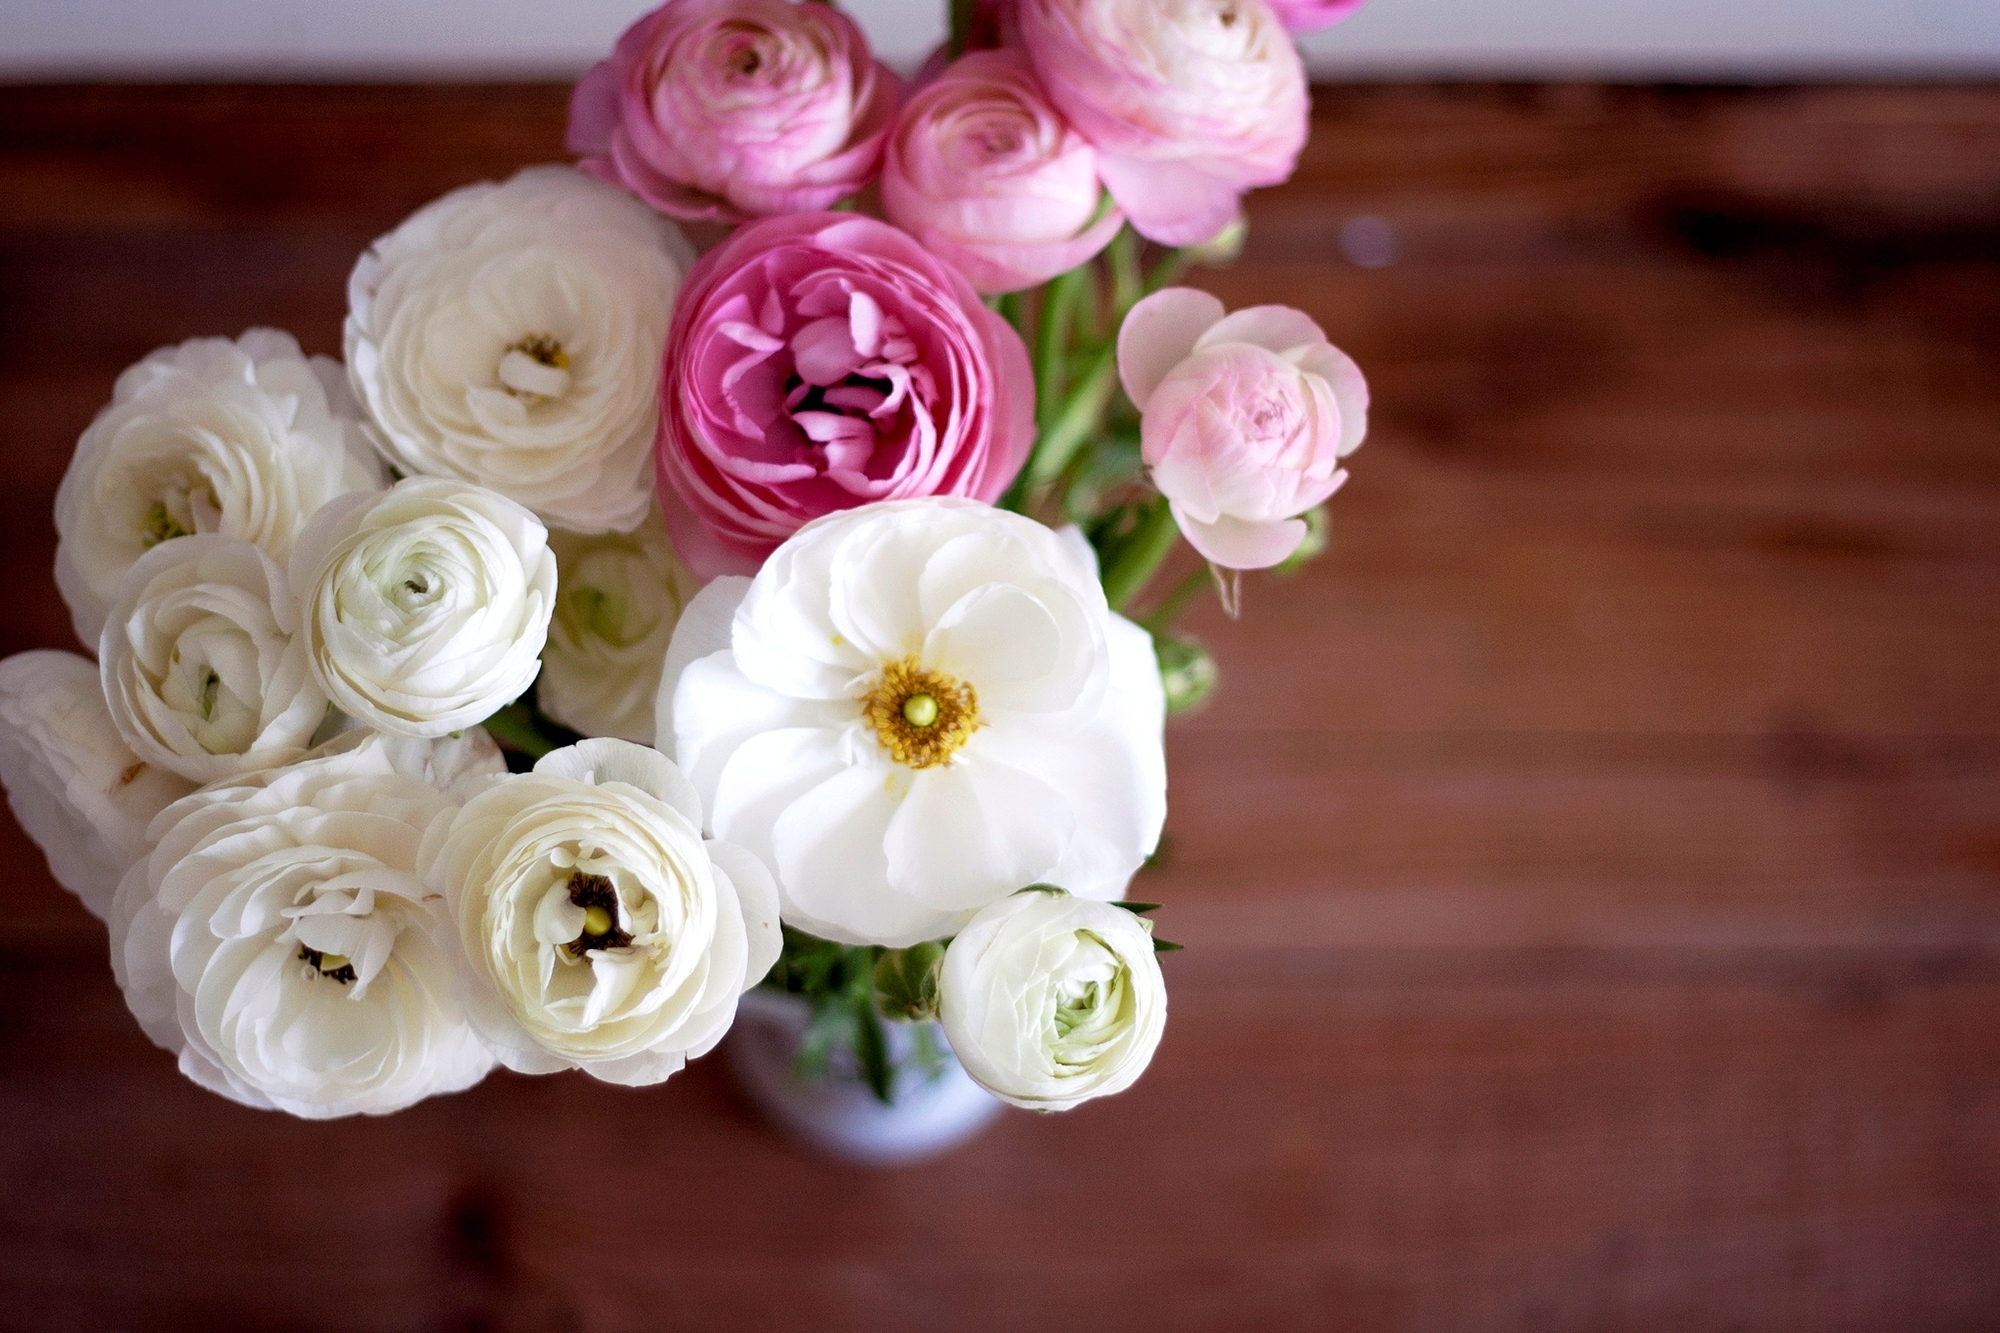 137002 Screensavers and Wallpapers Bouquet for phone. Download Bouquet, Flowers, Pink, Petals, Vase, Buds, Ranunculus, Buttercups pictures for free